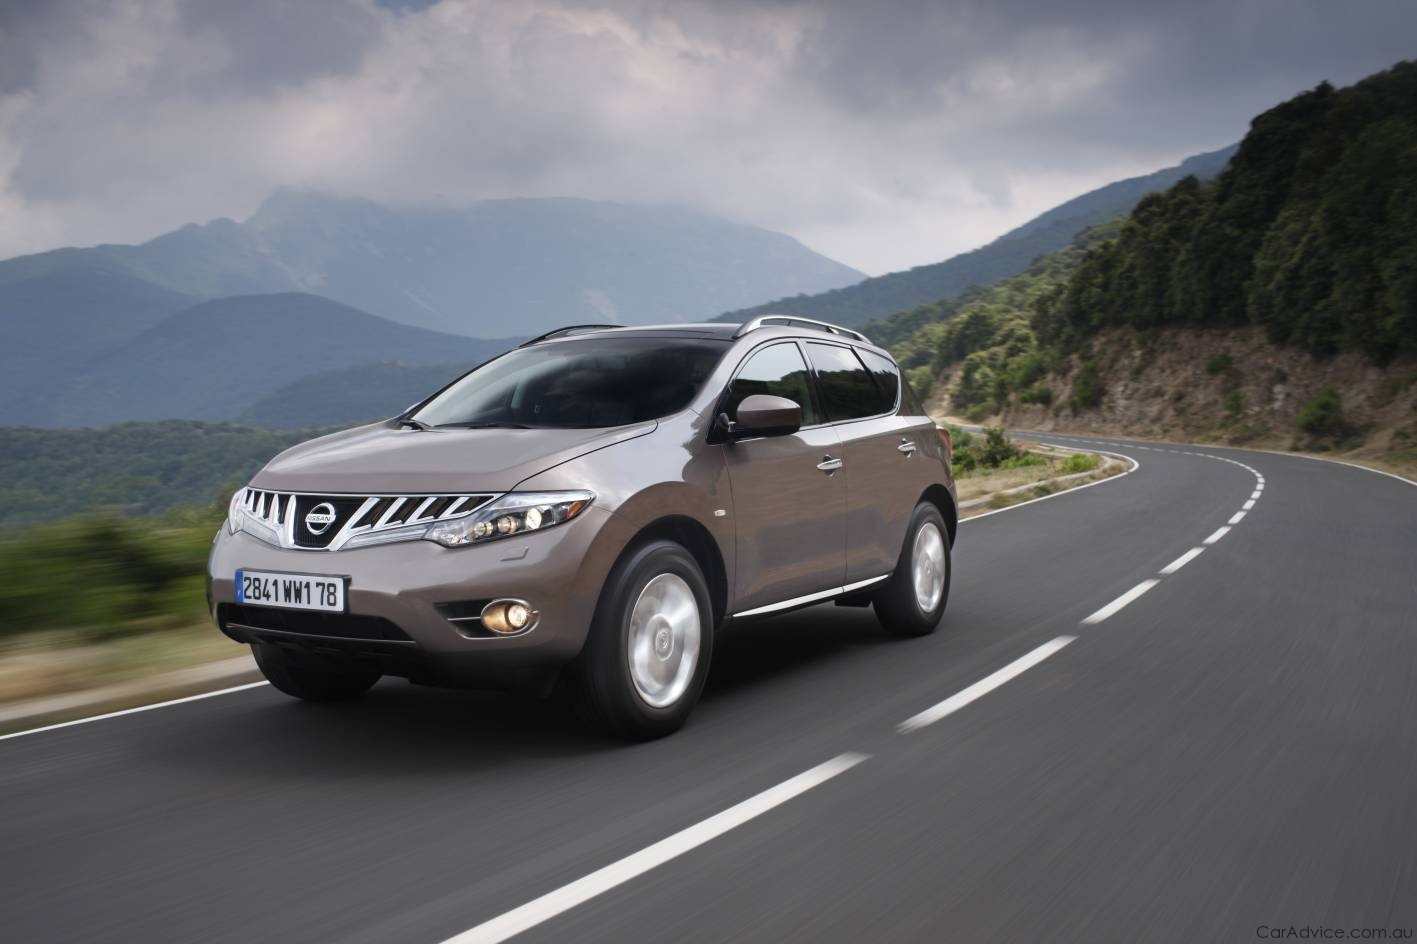 2010 Nissan Murano Updated Photos Caradvice